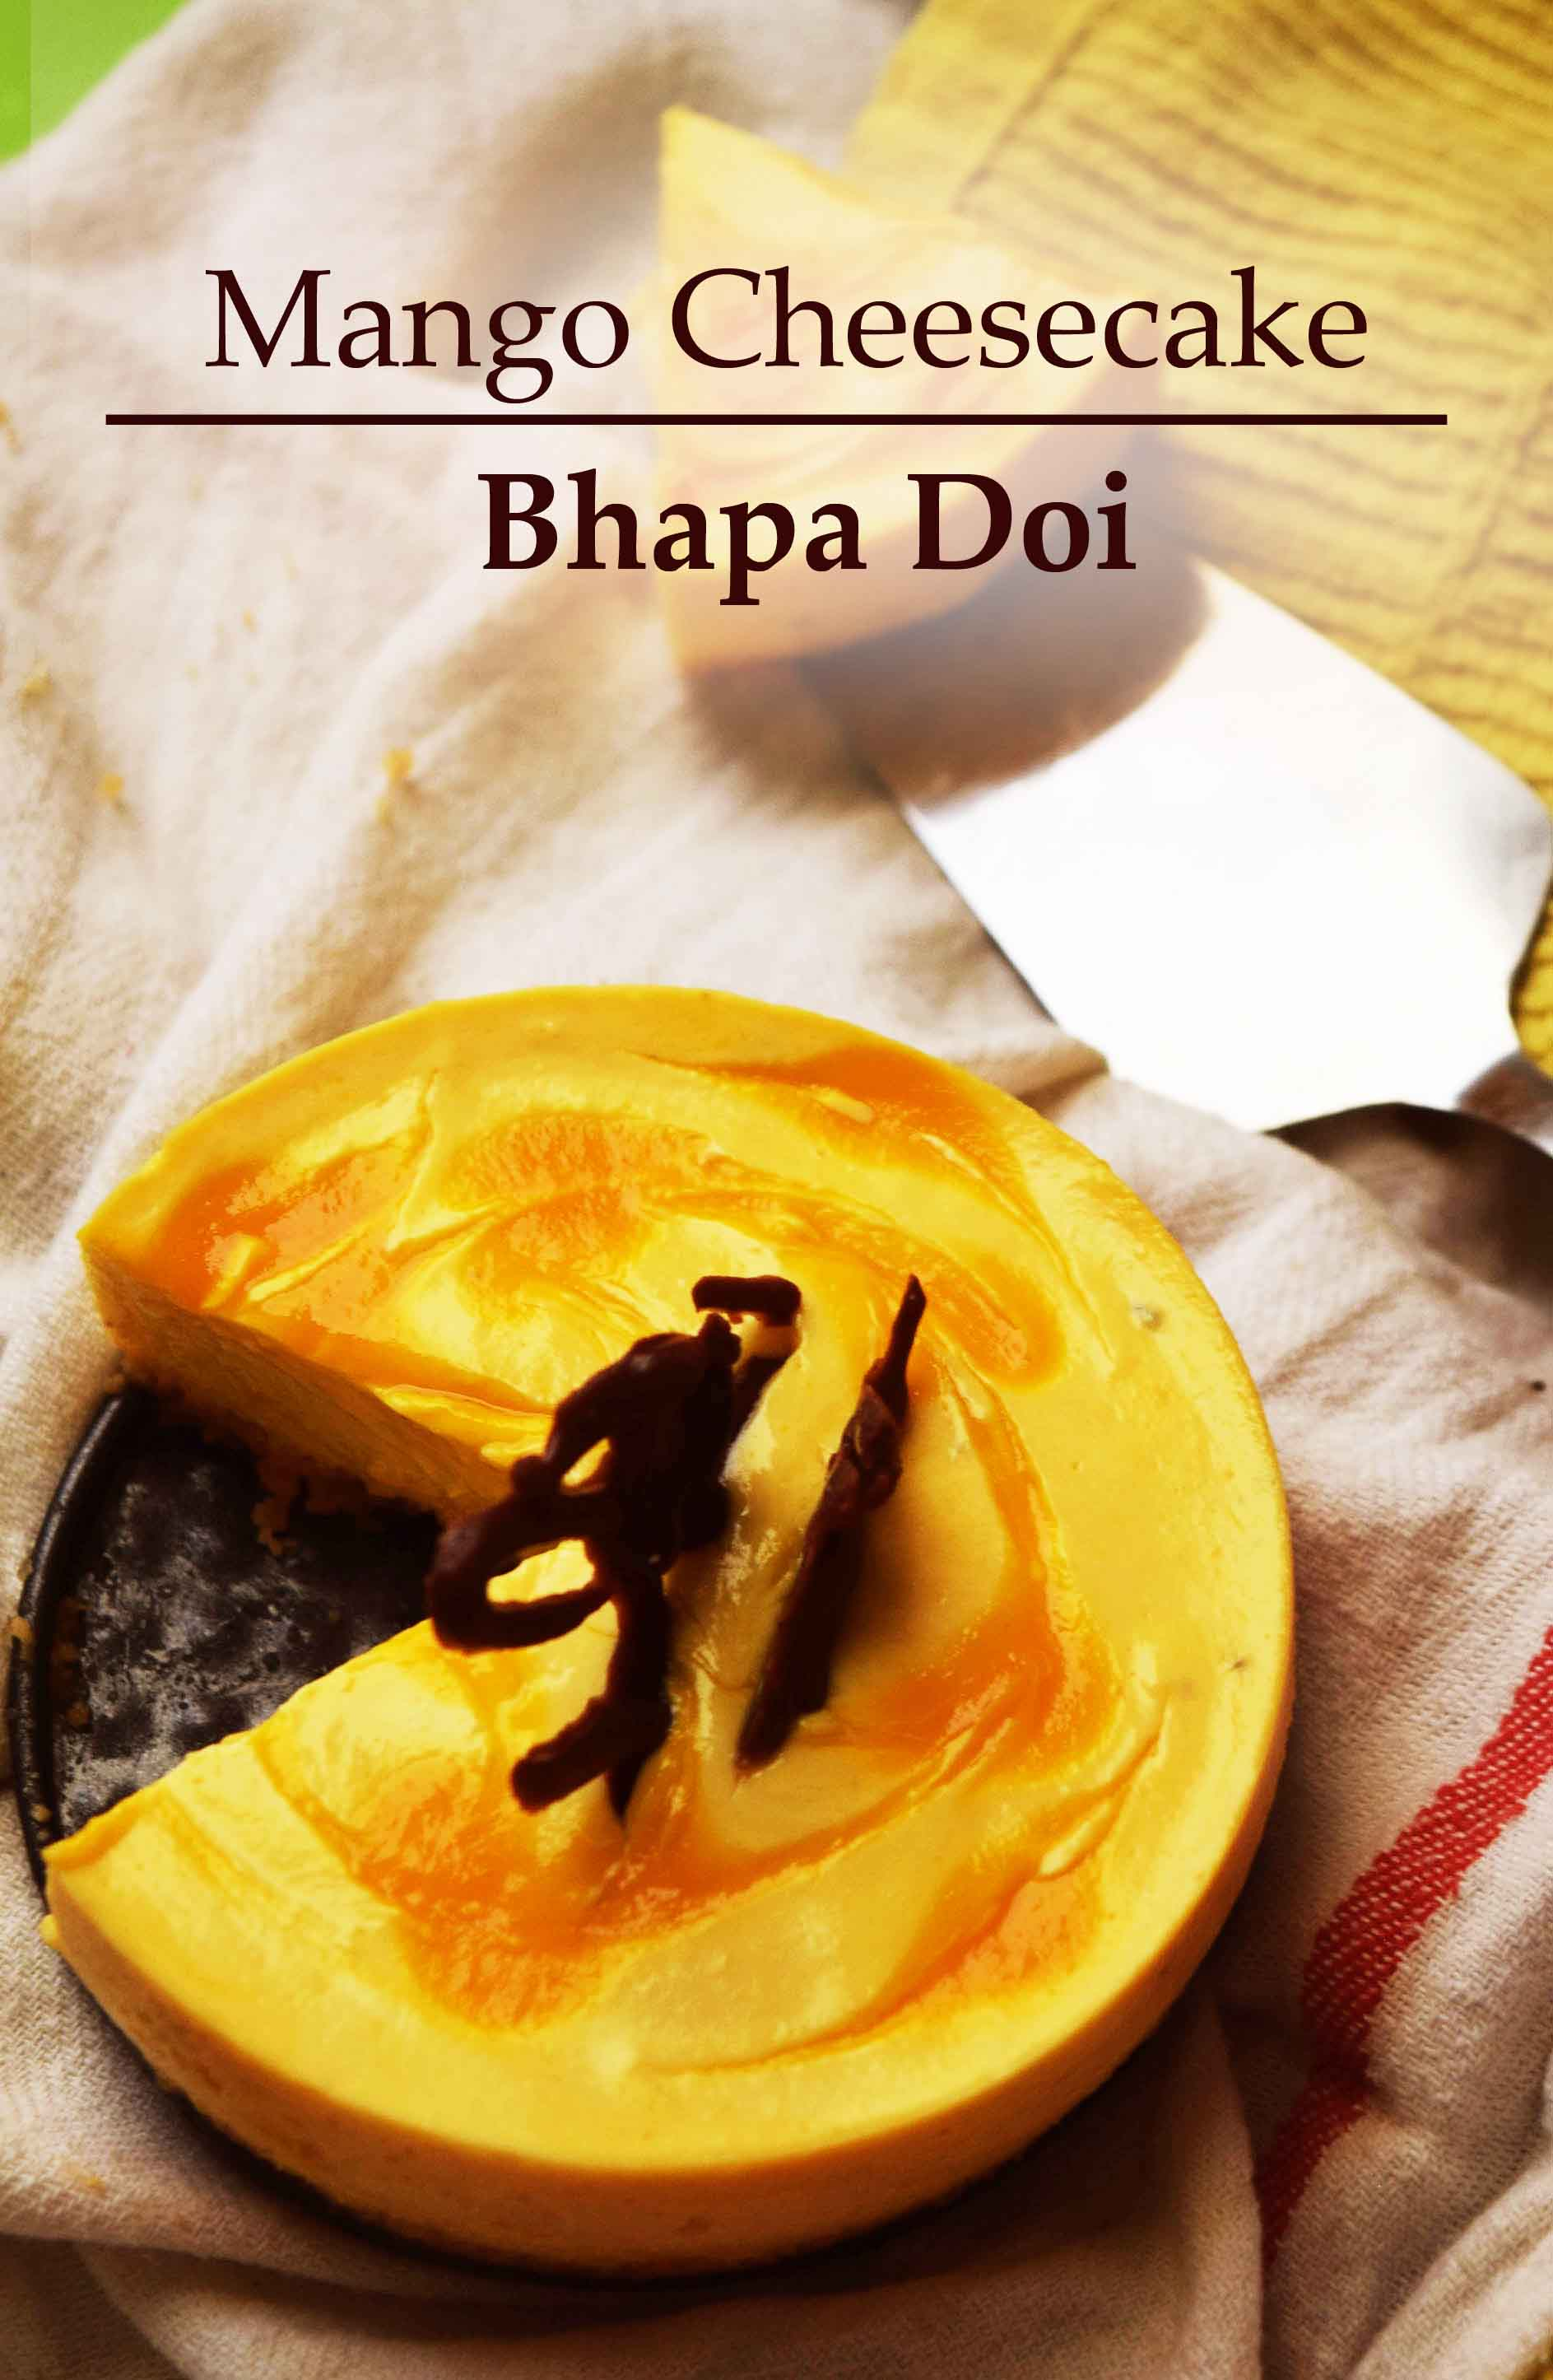 mango cheesecake bhapa doi